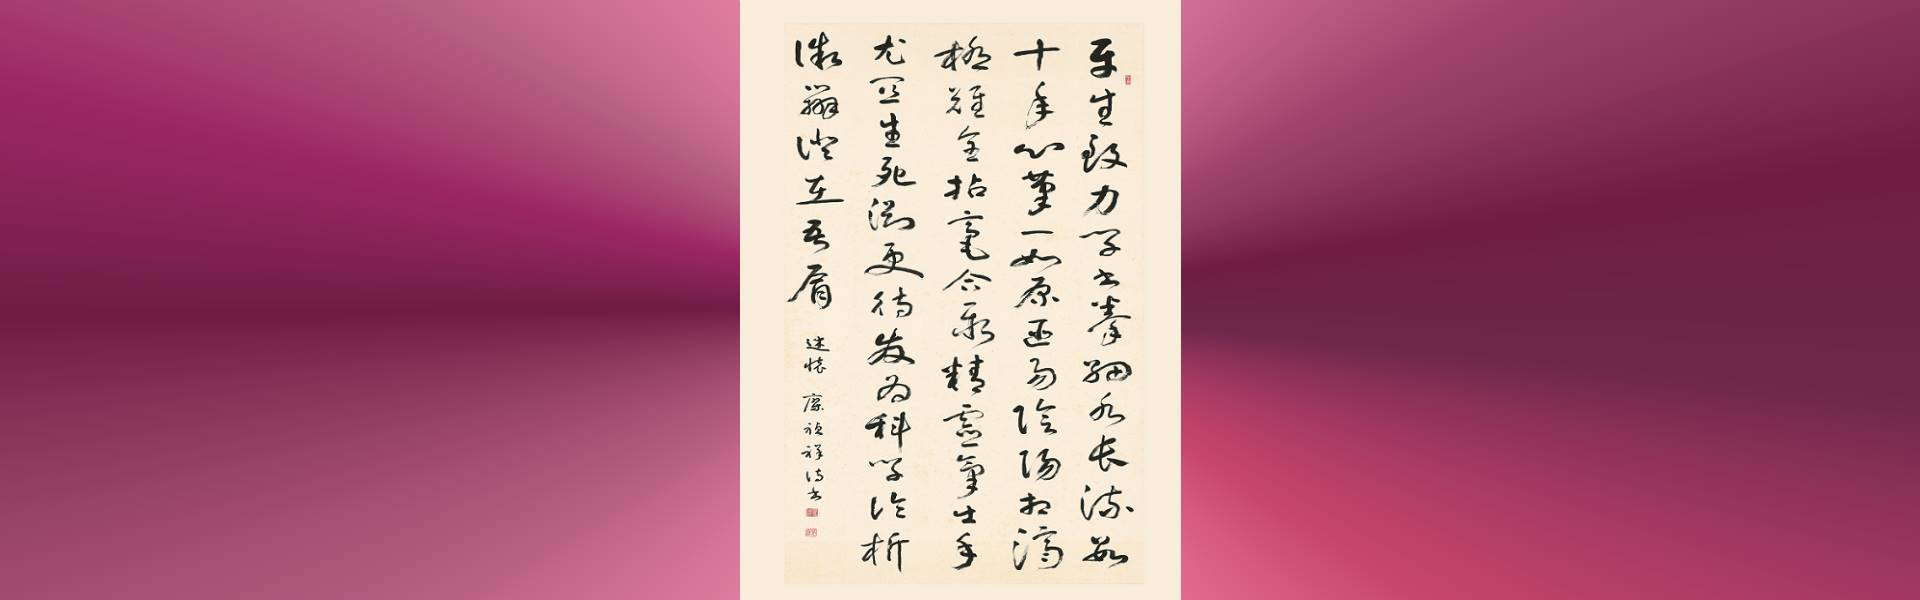 Life Force: Harnessing Pure Energy in Calligraphy and Tai Chi A Liao Chen-Hsiang 95th Year Retrospective Art Exhibition「open a new window」